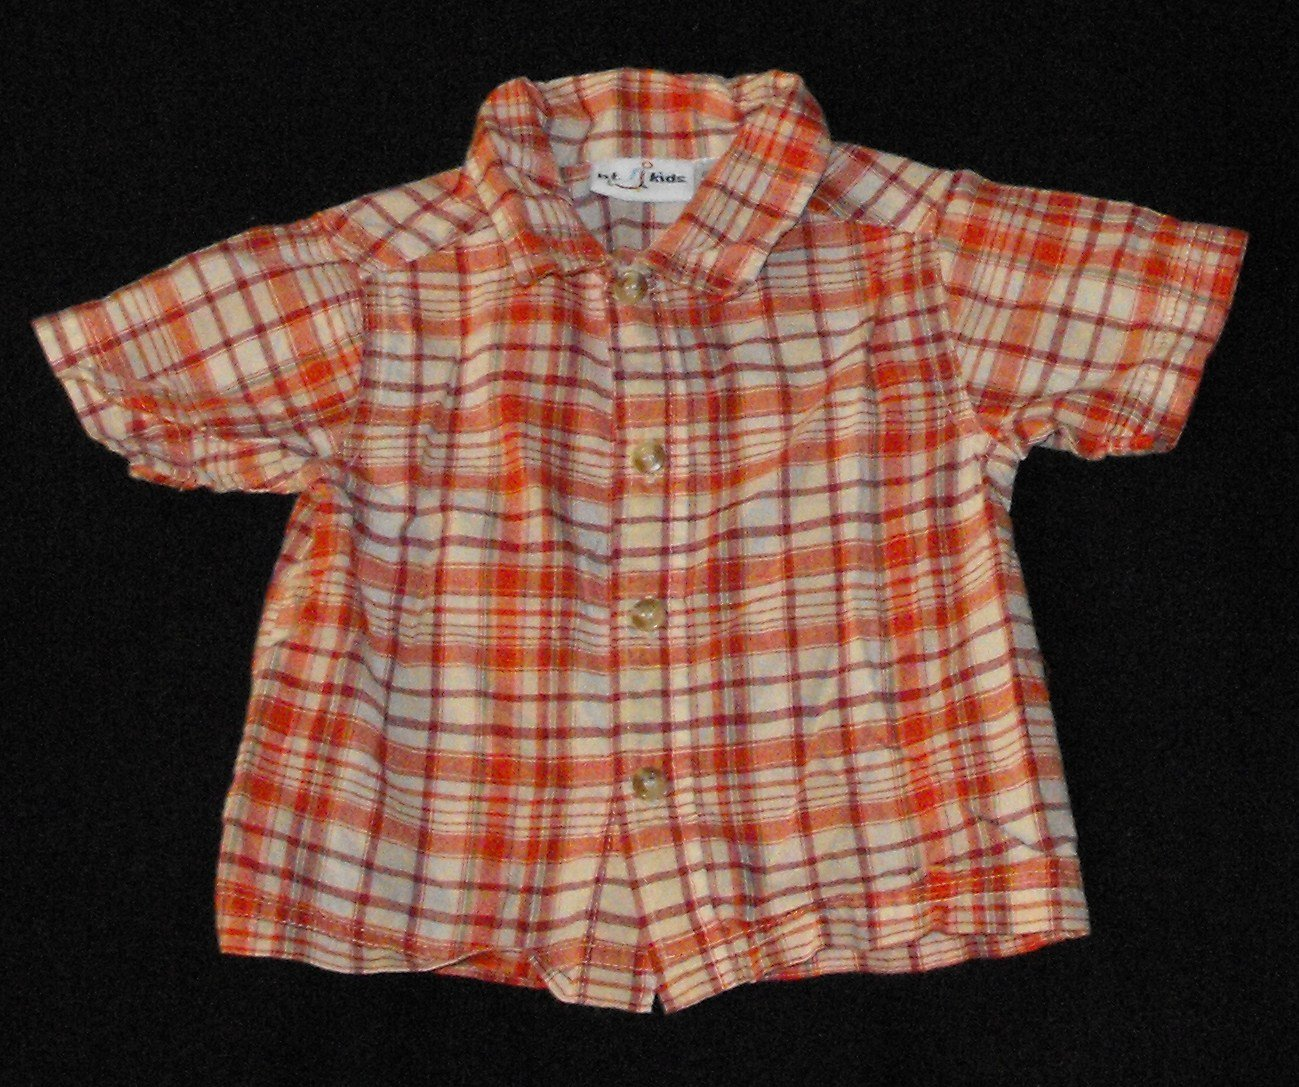 BT Kids (Sears) Baby Boys 18-24 Months Shortsleeve Plaid Button Up Shirt